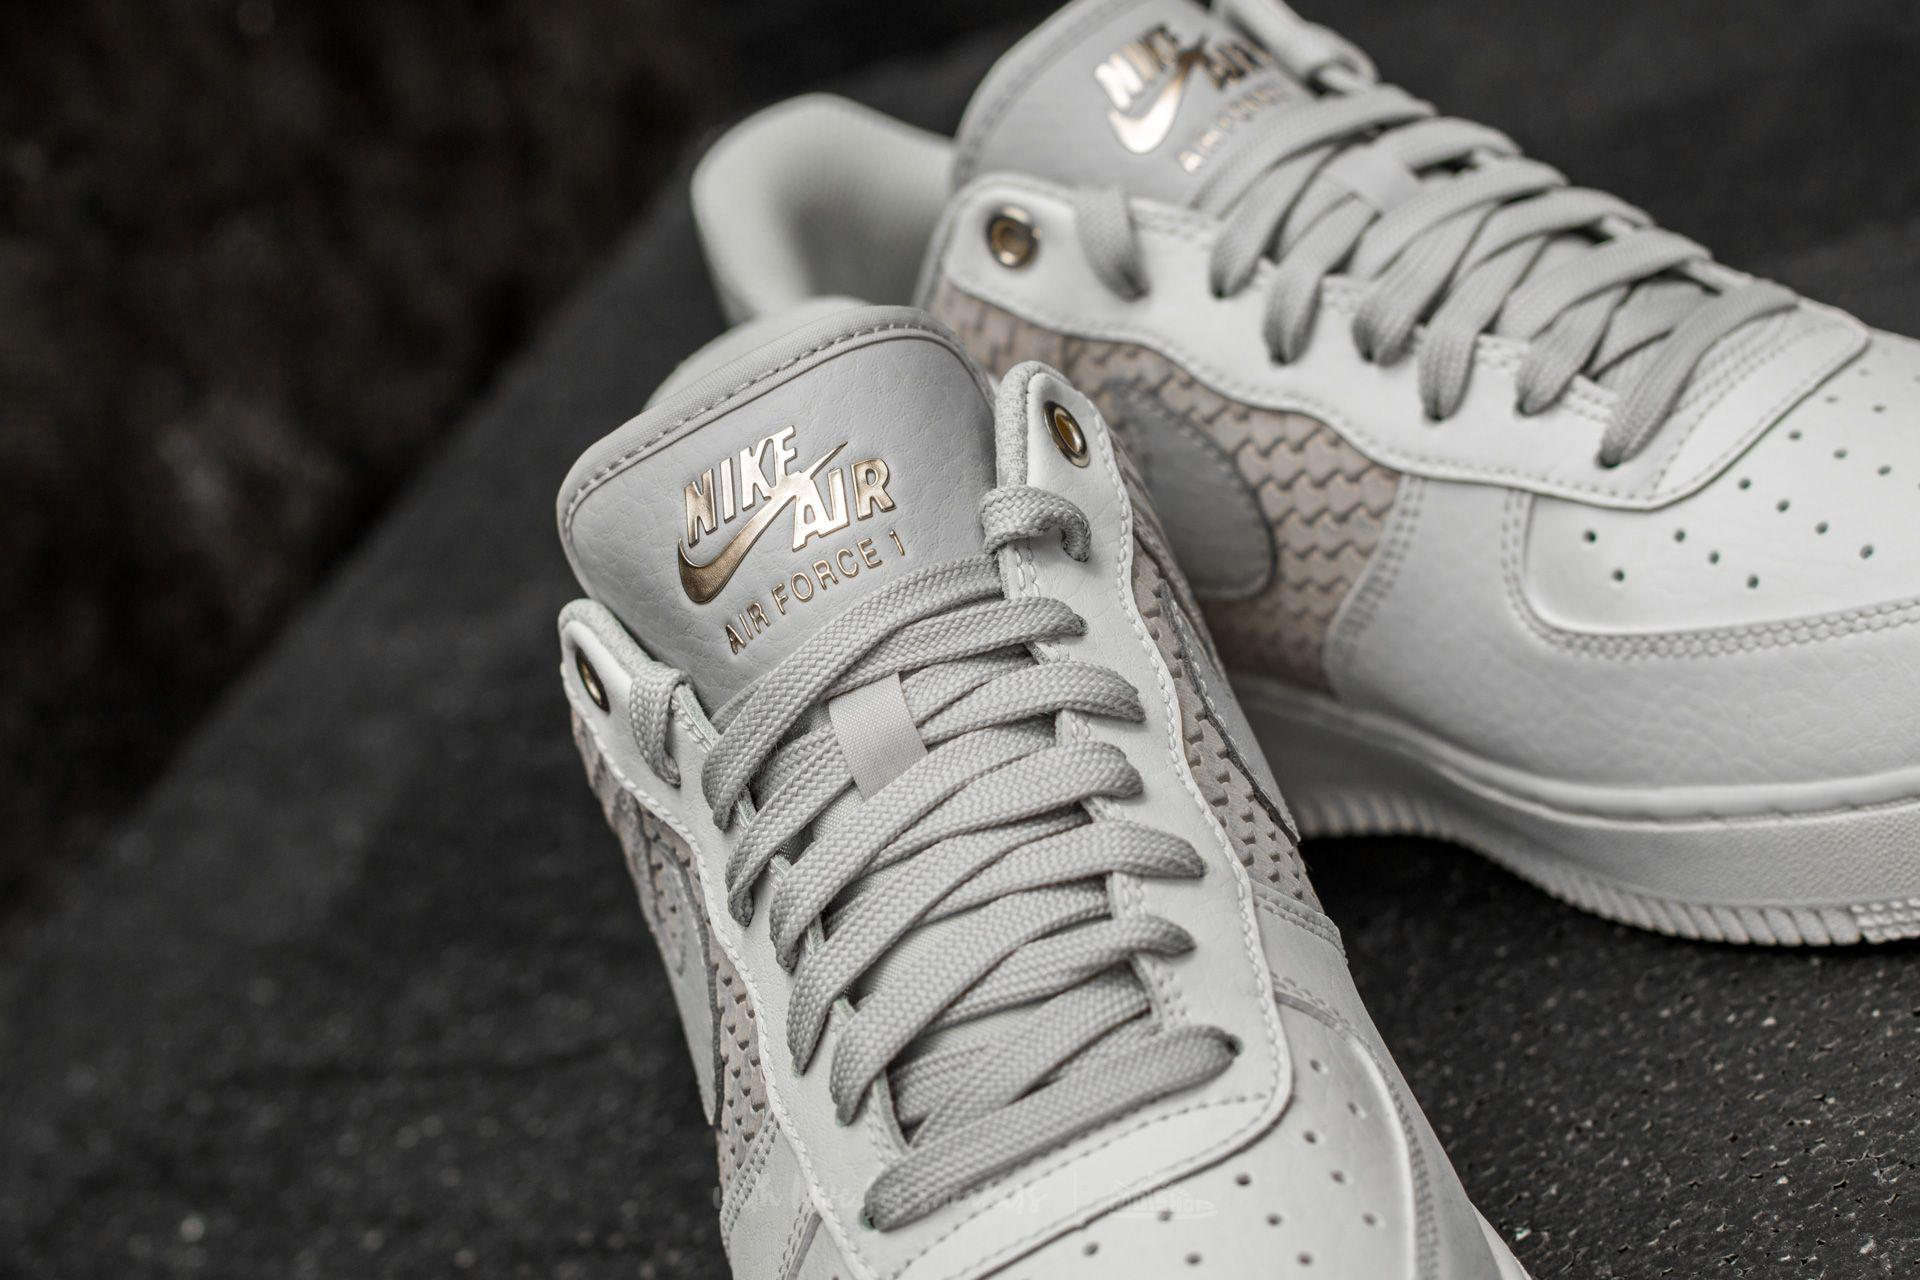 Nike Leather Air Force 1 '07 Lv8 Sail